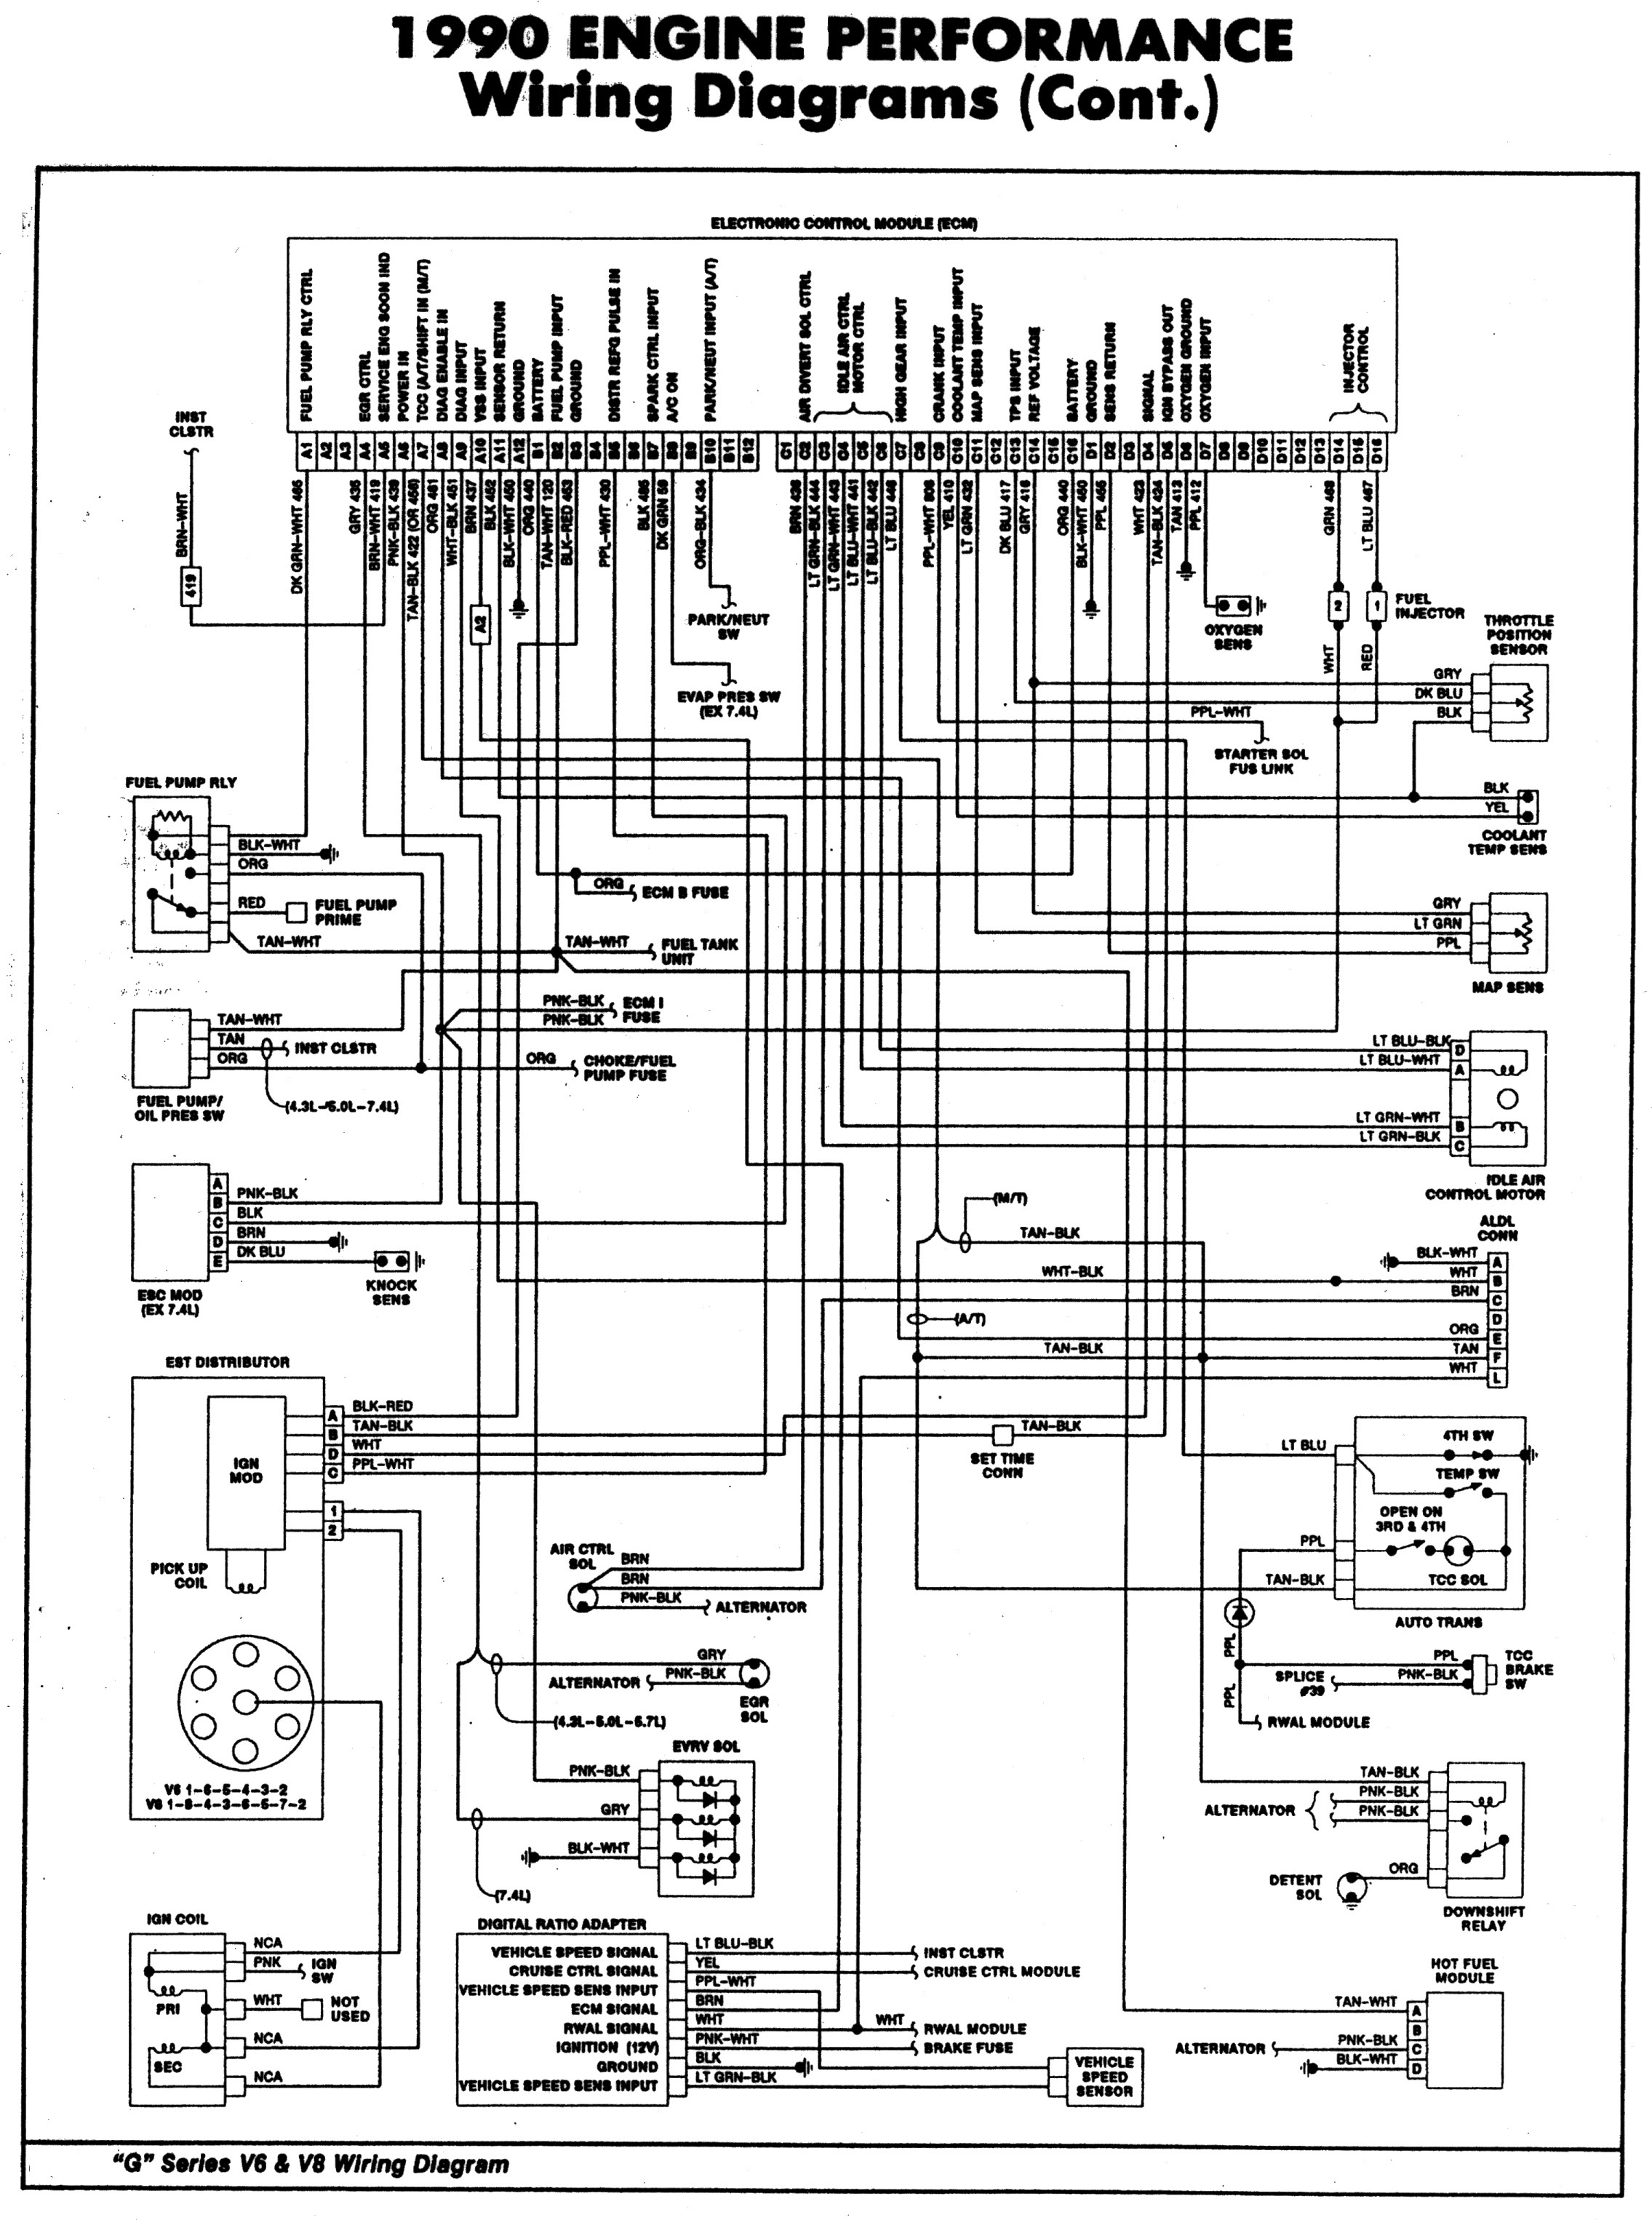 wiring diagram for 94 chevy pickup 1500 wiring diagram details wiring diagram for 94 chevy pickup 1500 transmission [ 2271 x 3051 Pixel ]